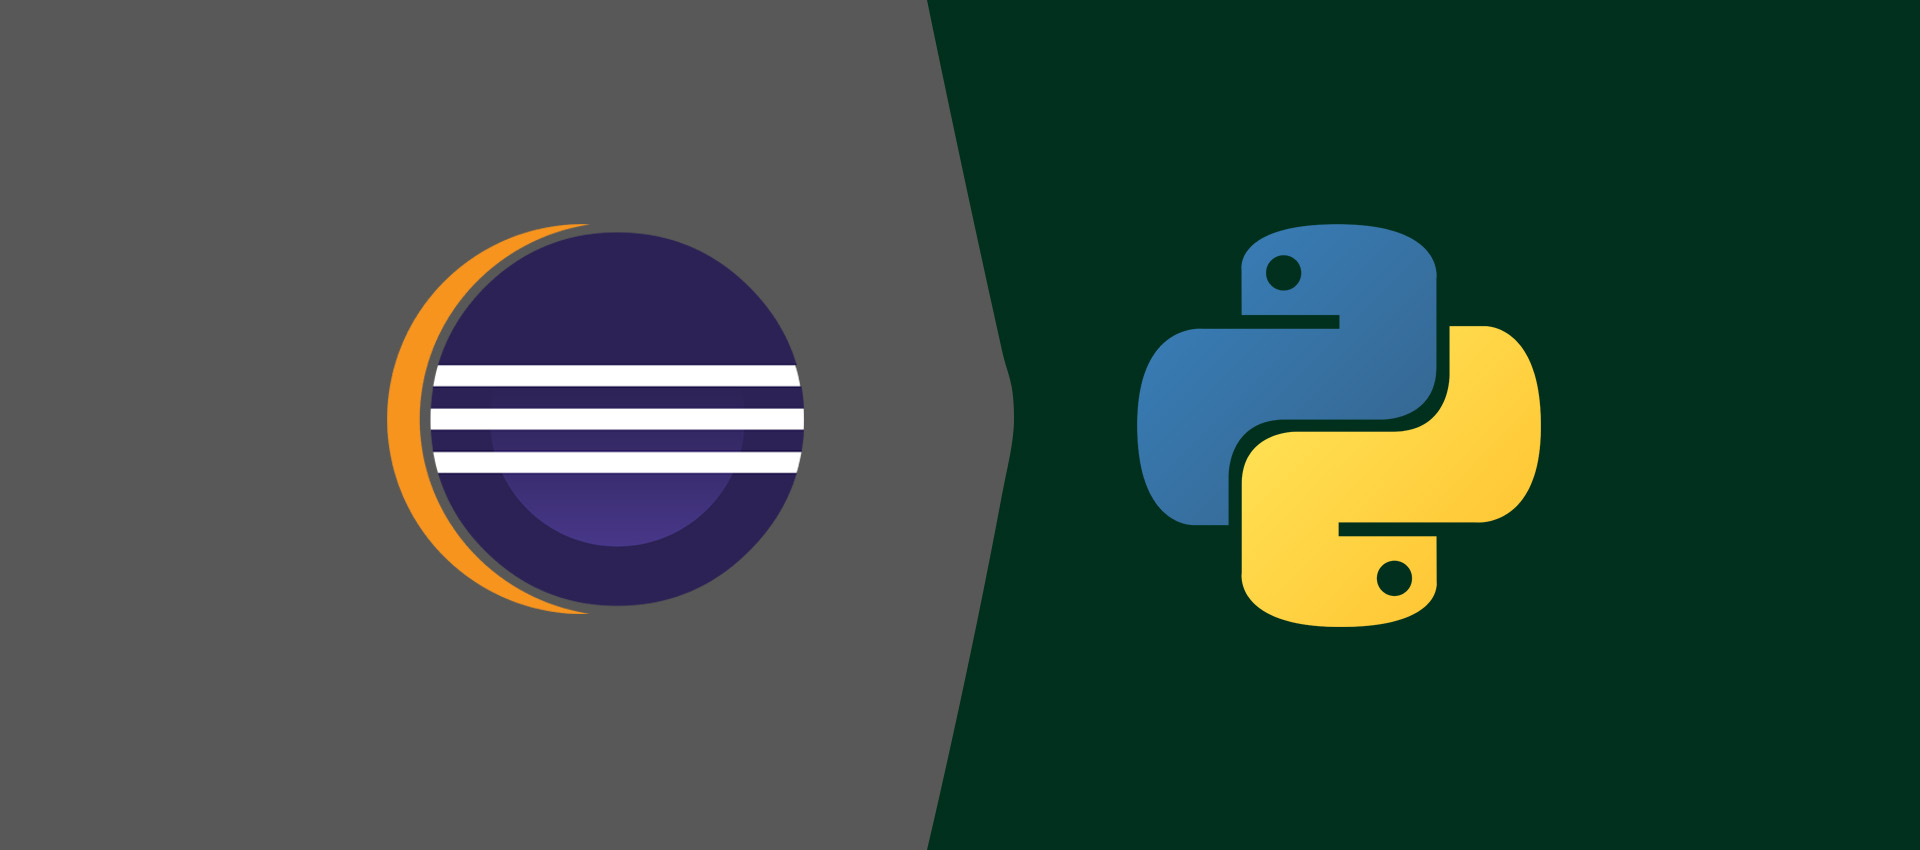 How To Install Eclipse for Python On Windows